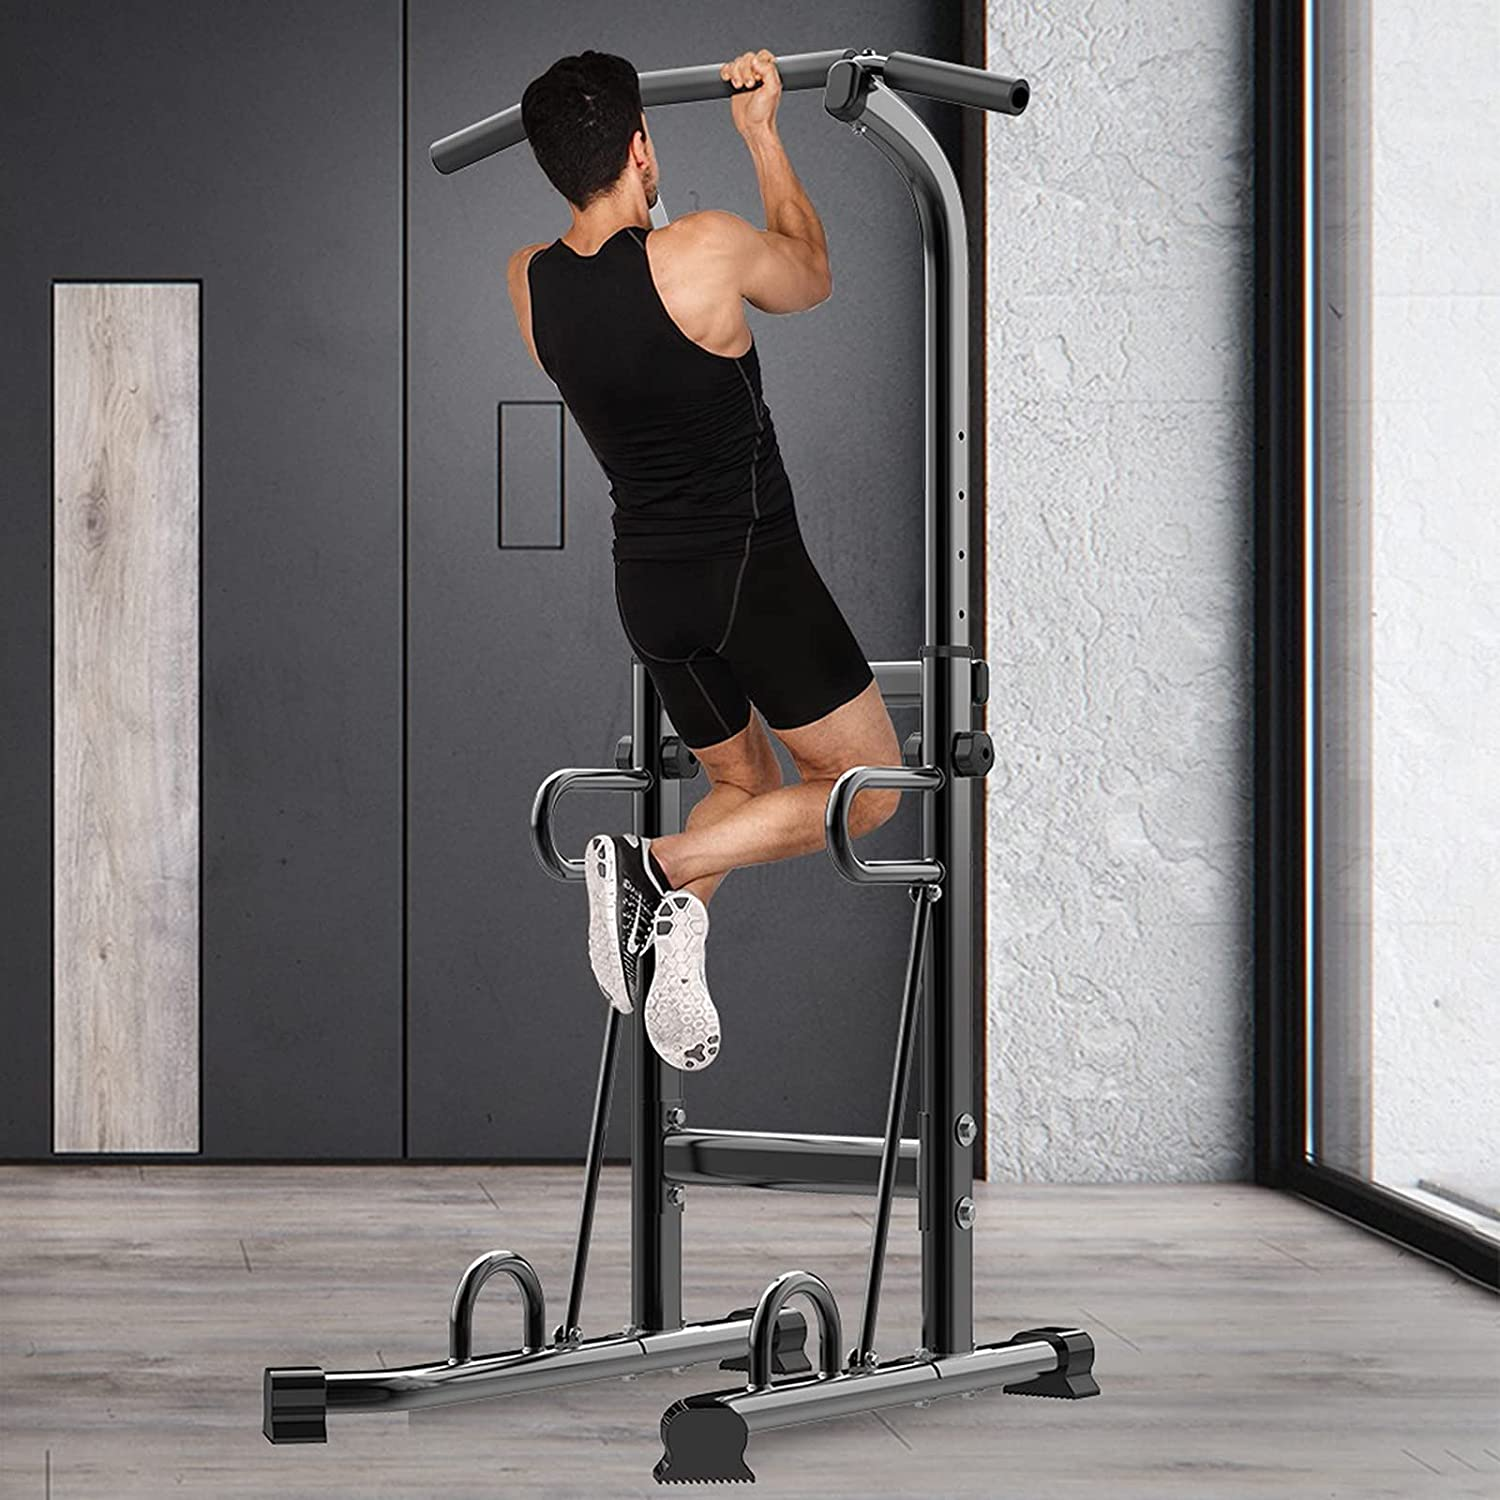 YYL Super Special SALE held Power Tower Workout Dip Station Denver Mall Gym Pull Home Strengt for Up